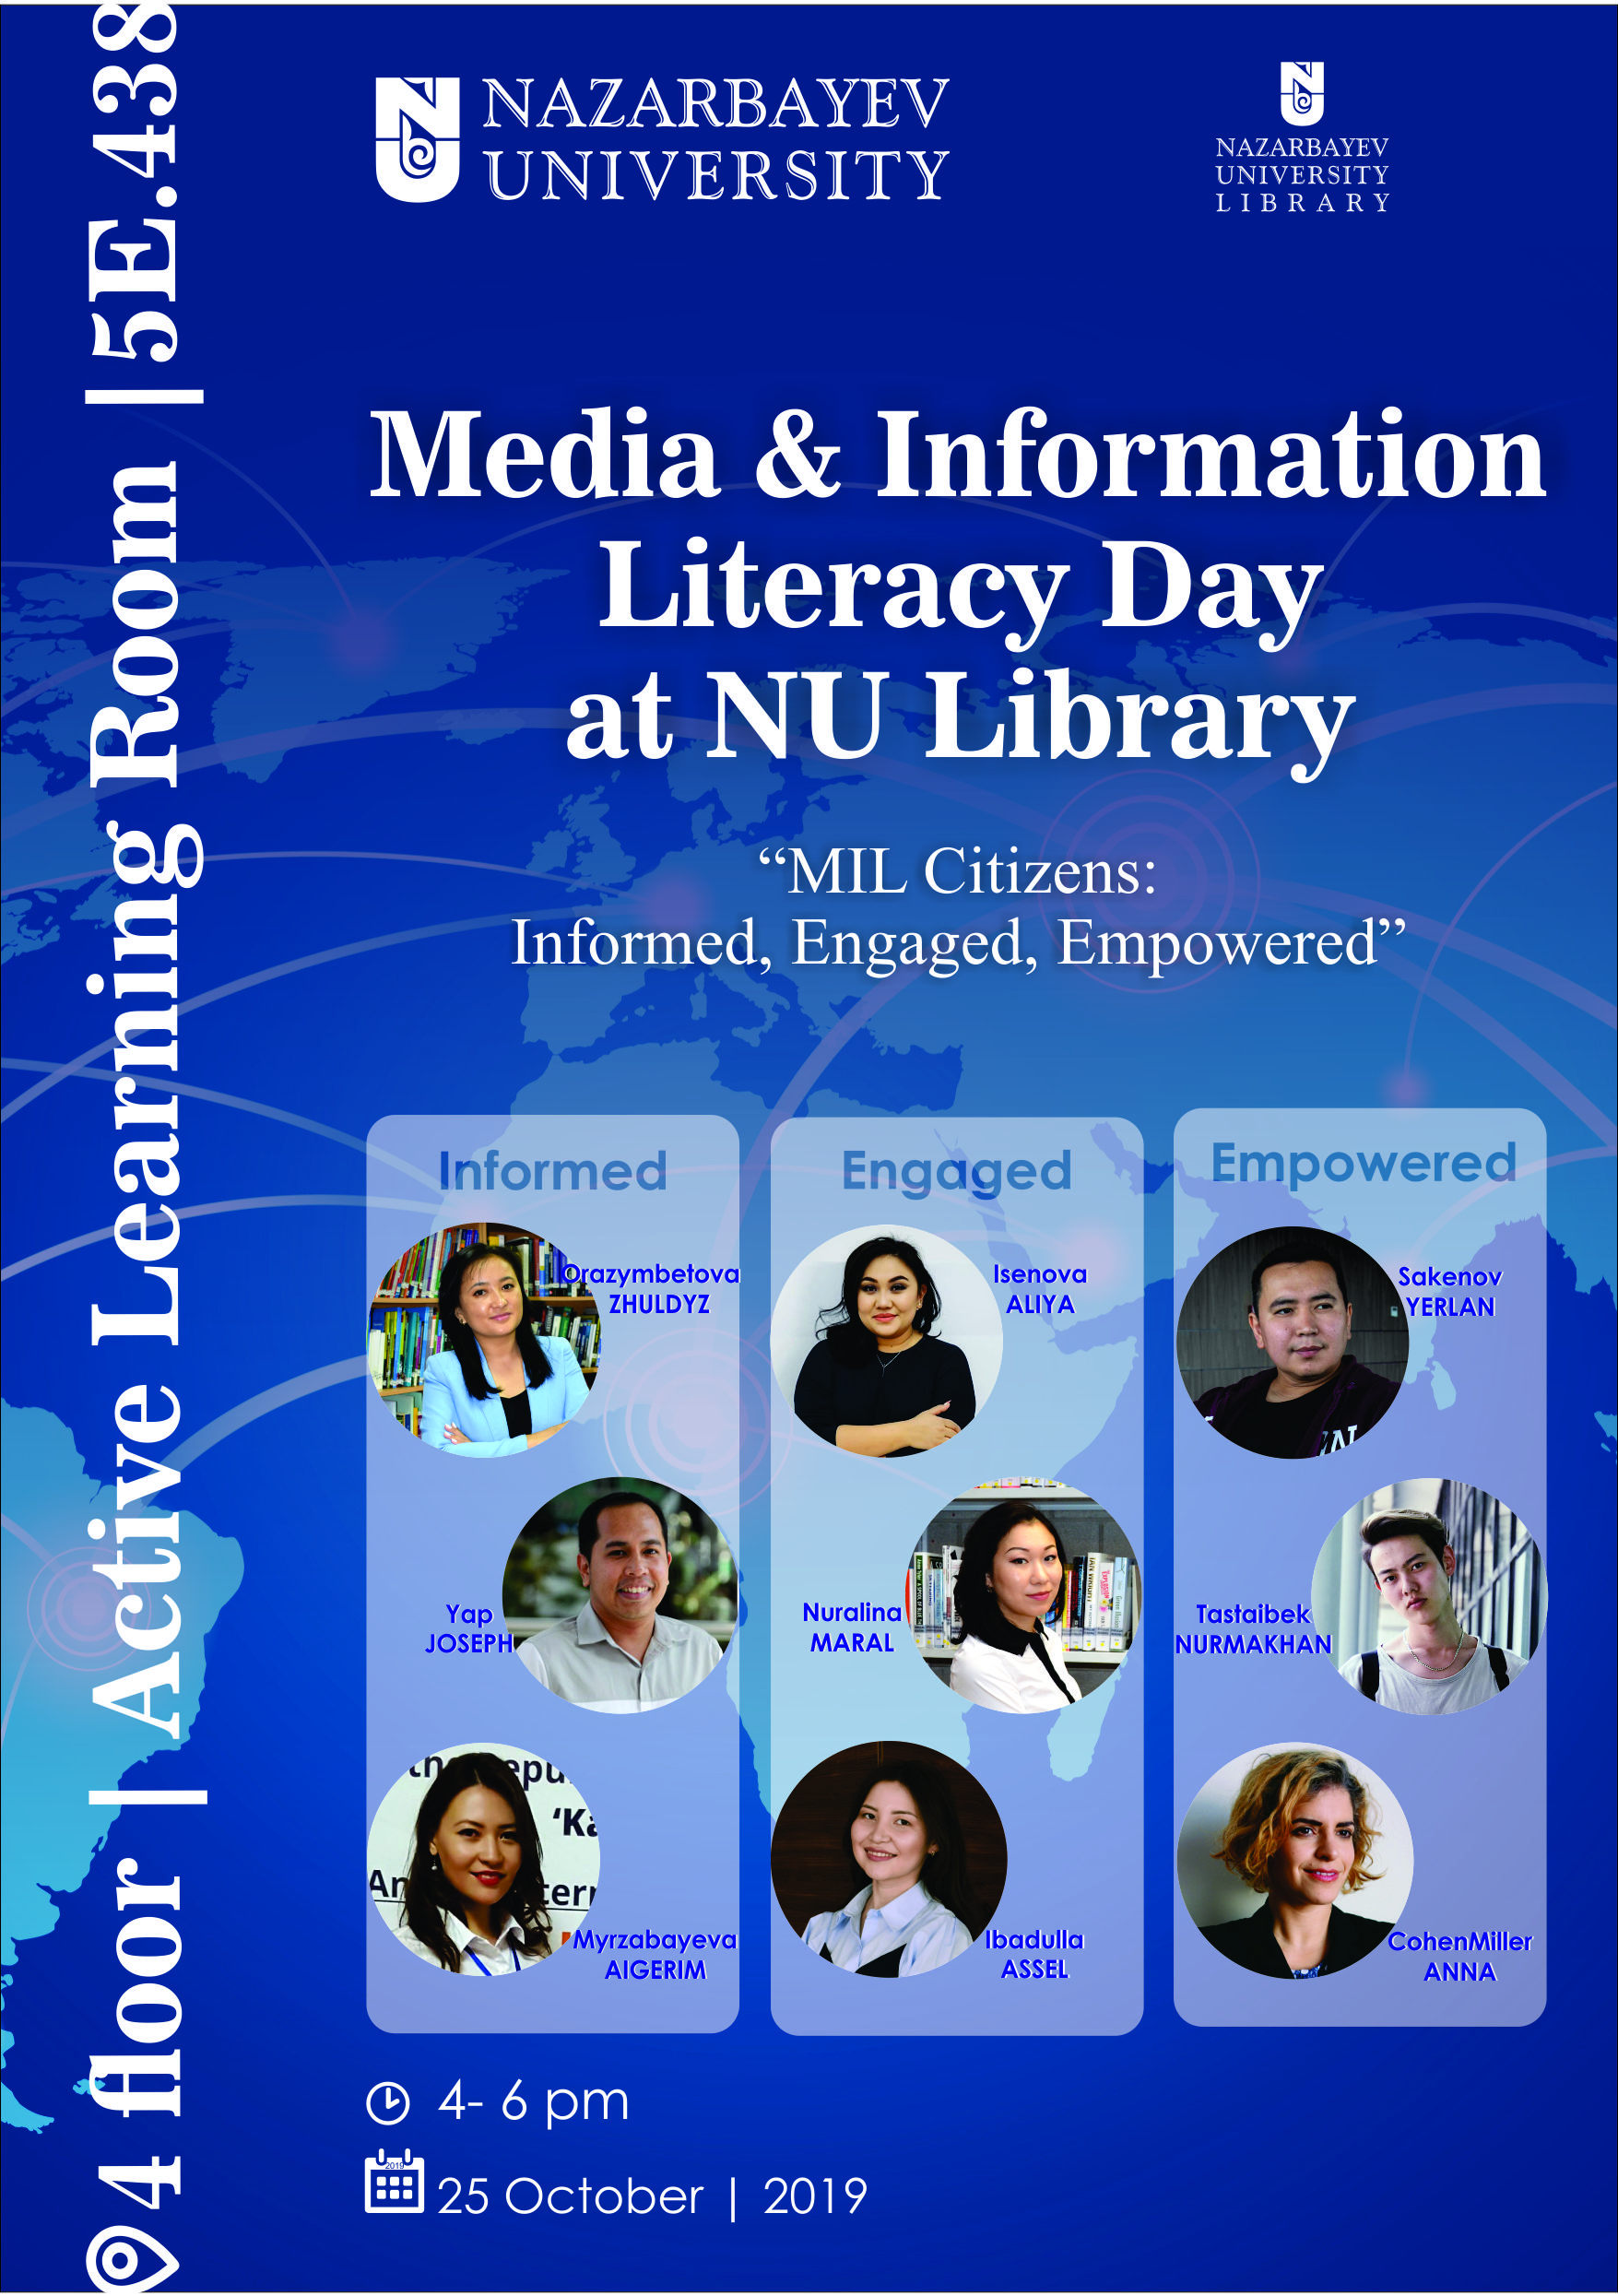 Media and Information Literacy Day